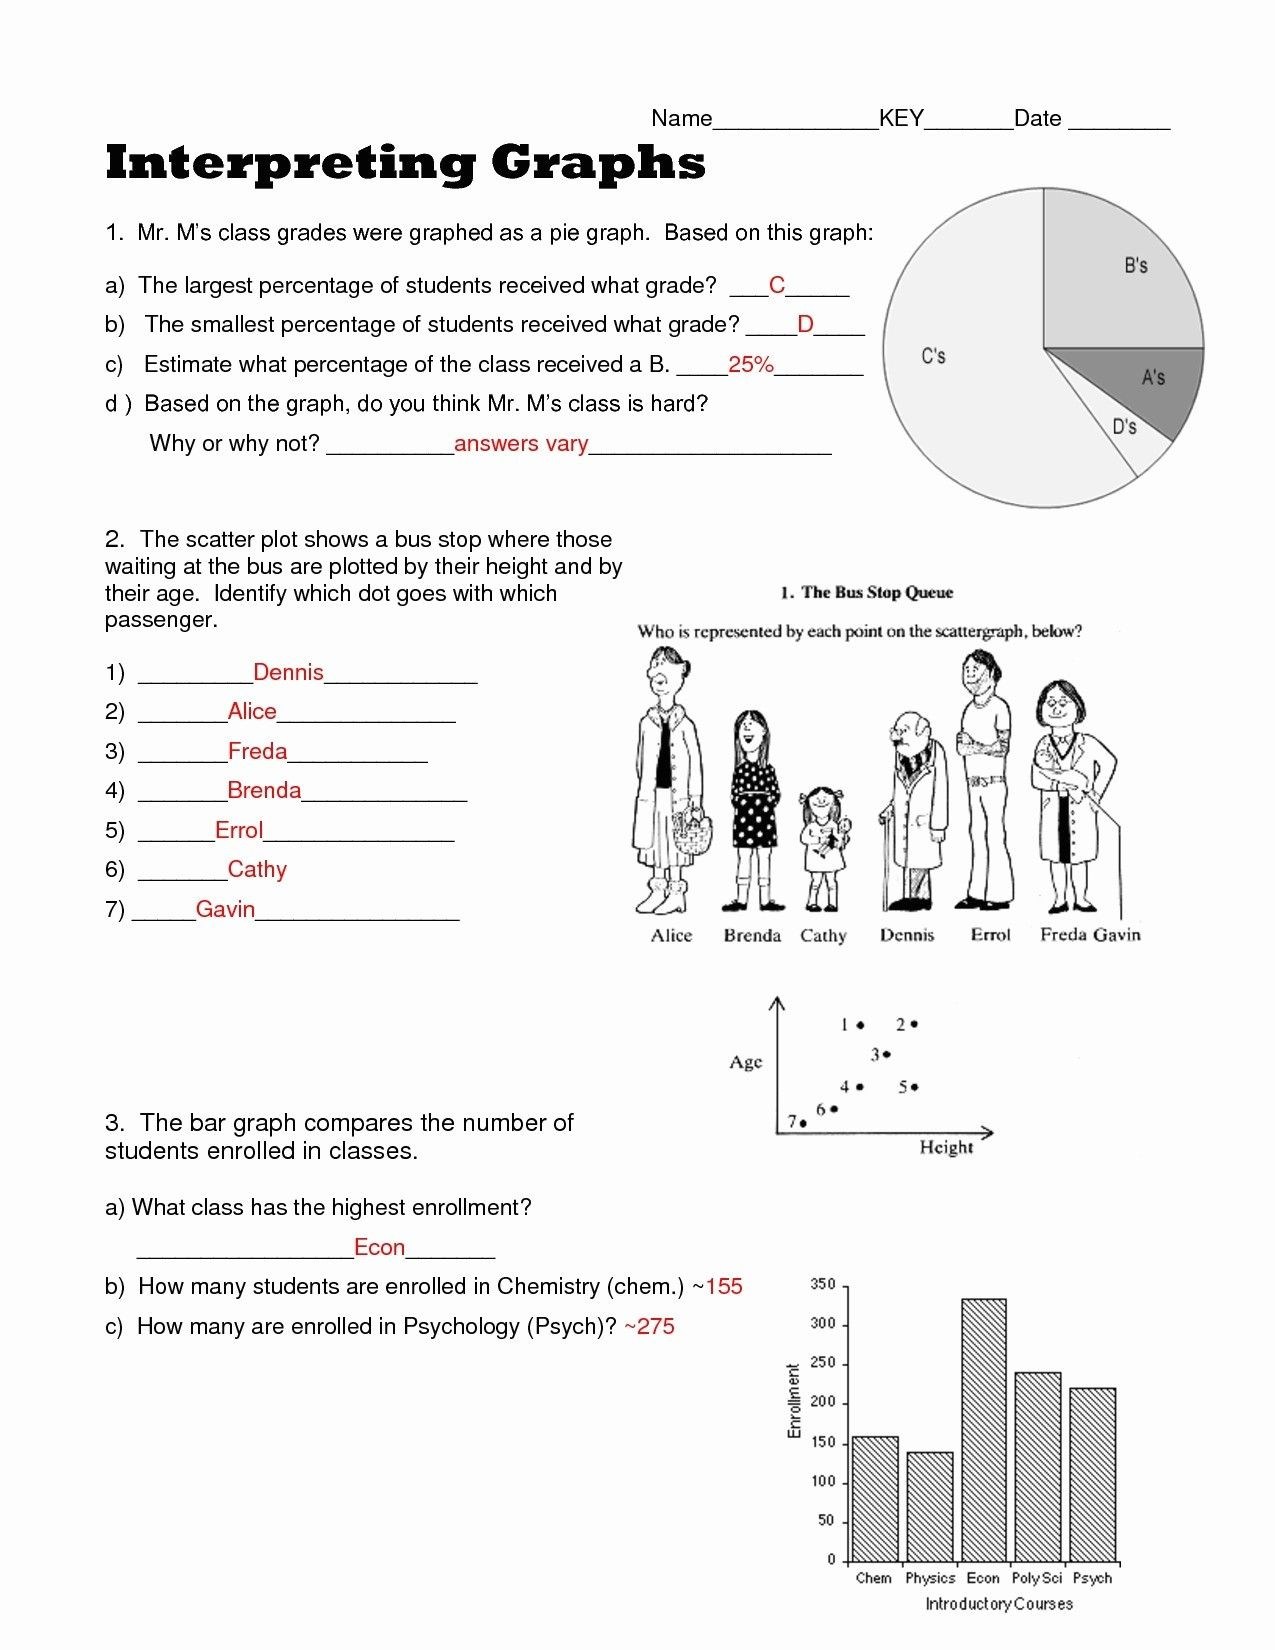 Reading Charts And Graphs Worksheets Middle School Charts And Graphs Worksheets For Middle Sc Graphing Worksheets Reading Graphs Graphing [ 1650 x 1275 Pixel ]